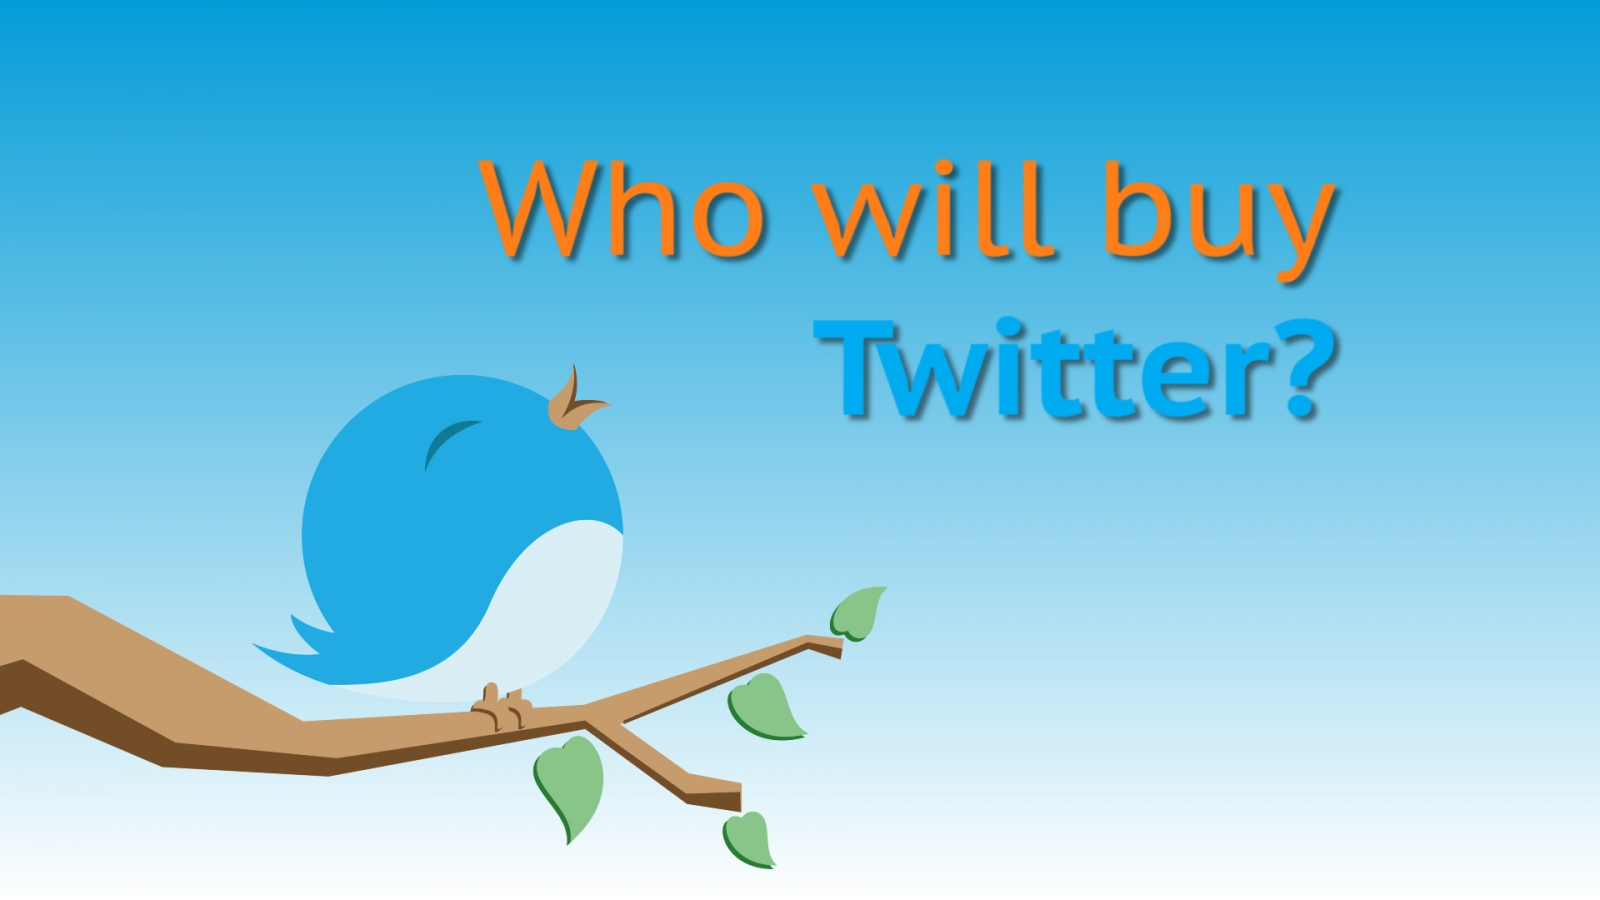 Google, Microsoft, Disney: Which company will buy Twitter?